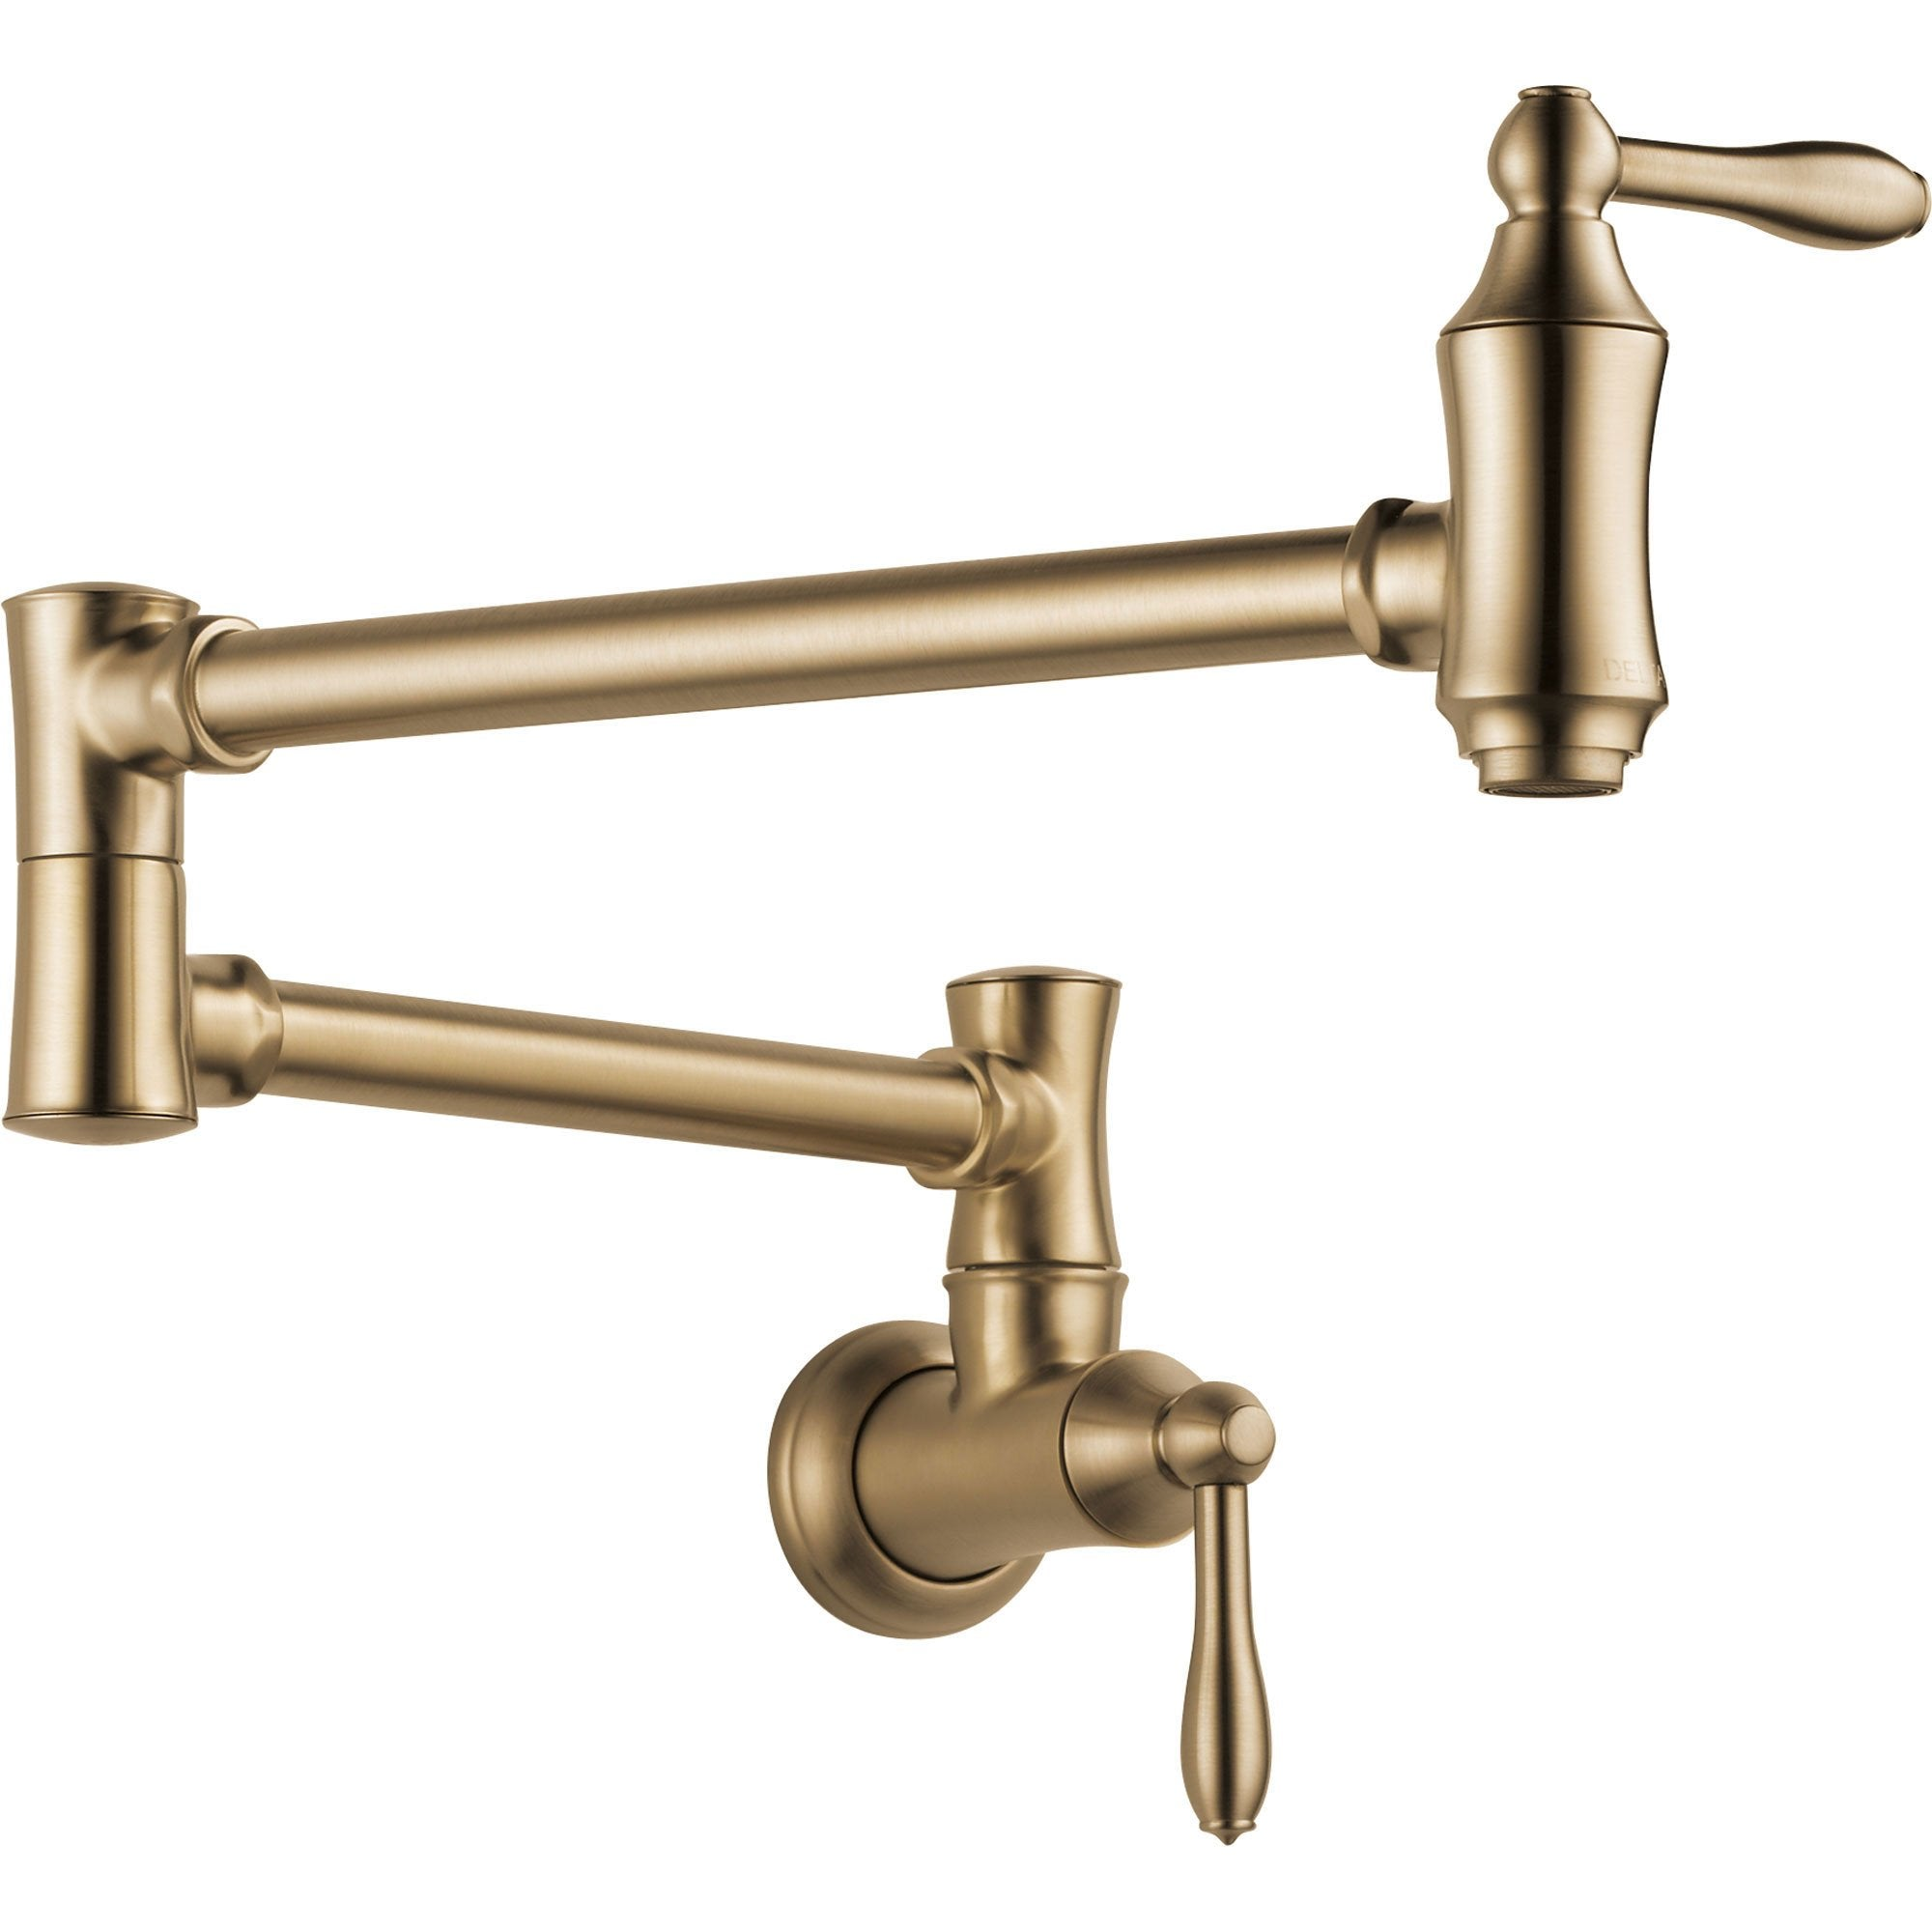 Delta Traditional Kitchen Wall Mounted Champagne Bronze Pot filler Faucet 628910